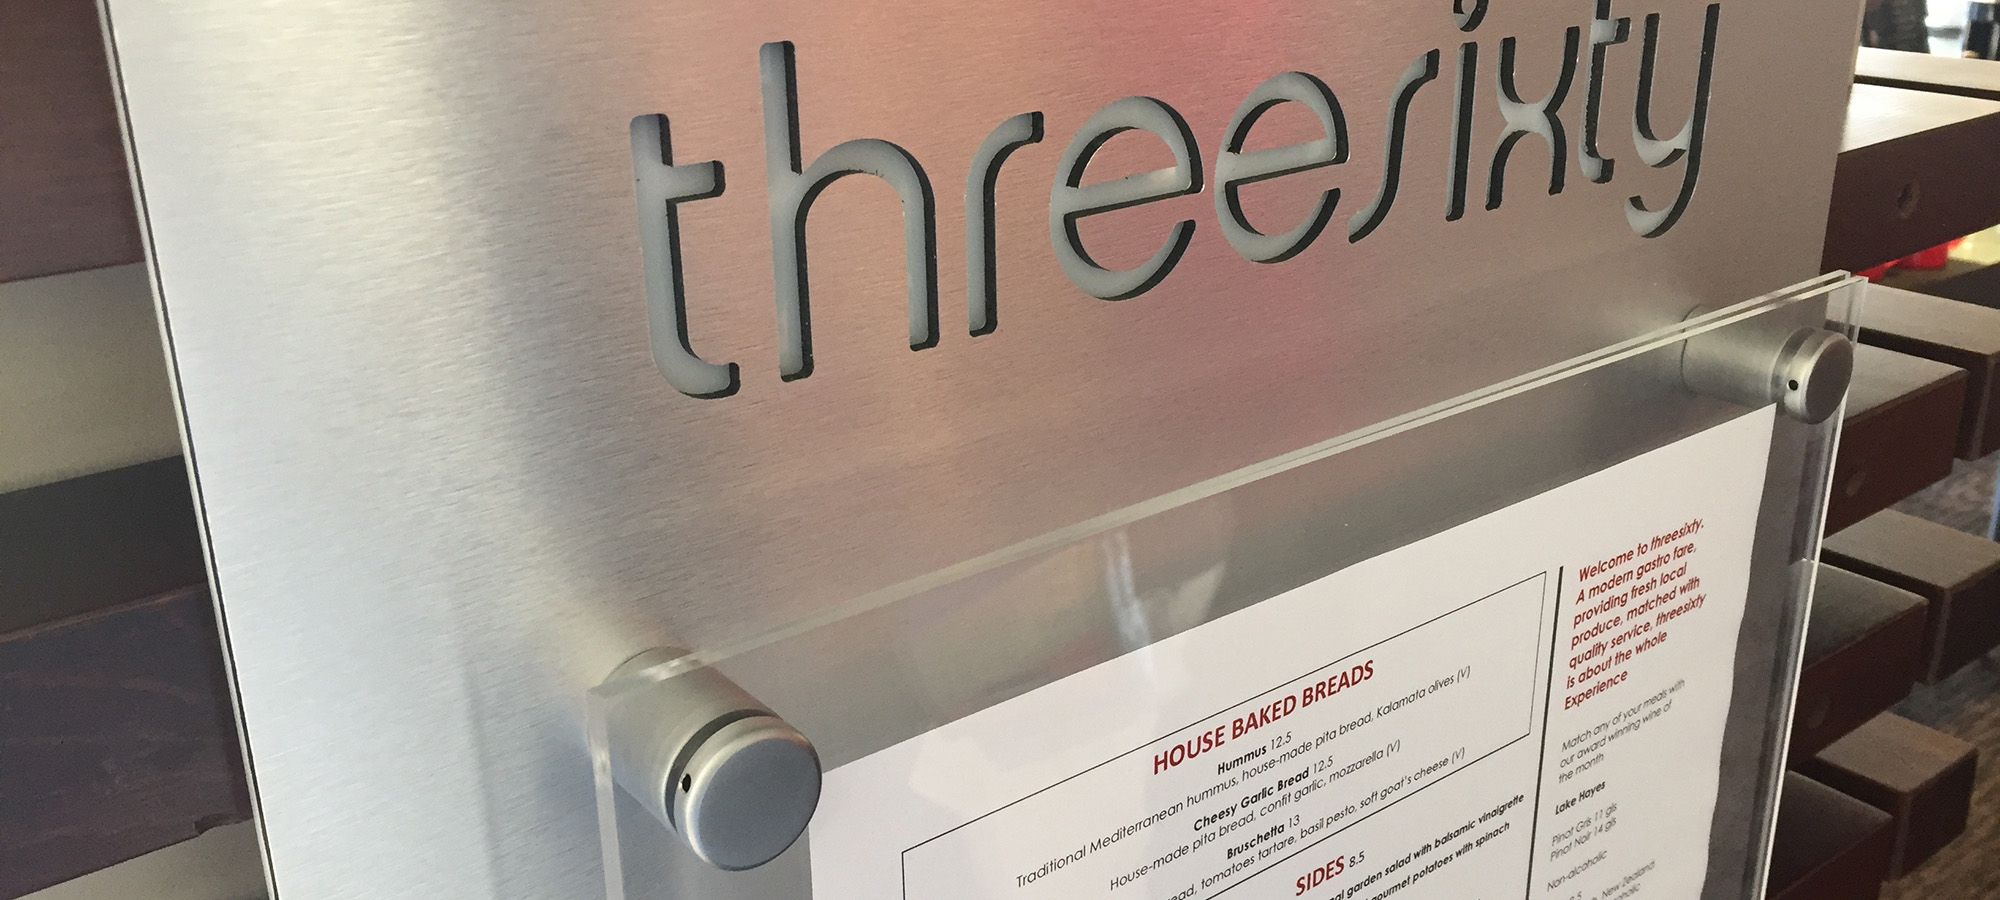 Three Sixty Menu